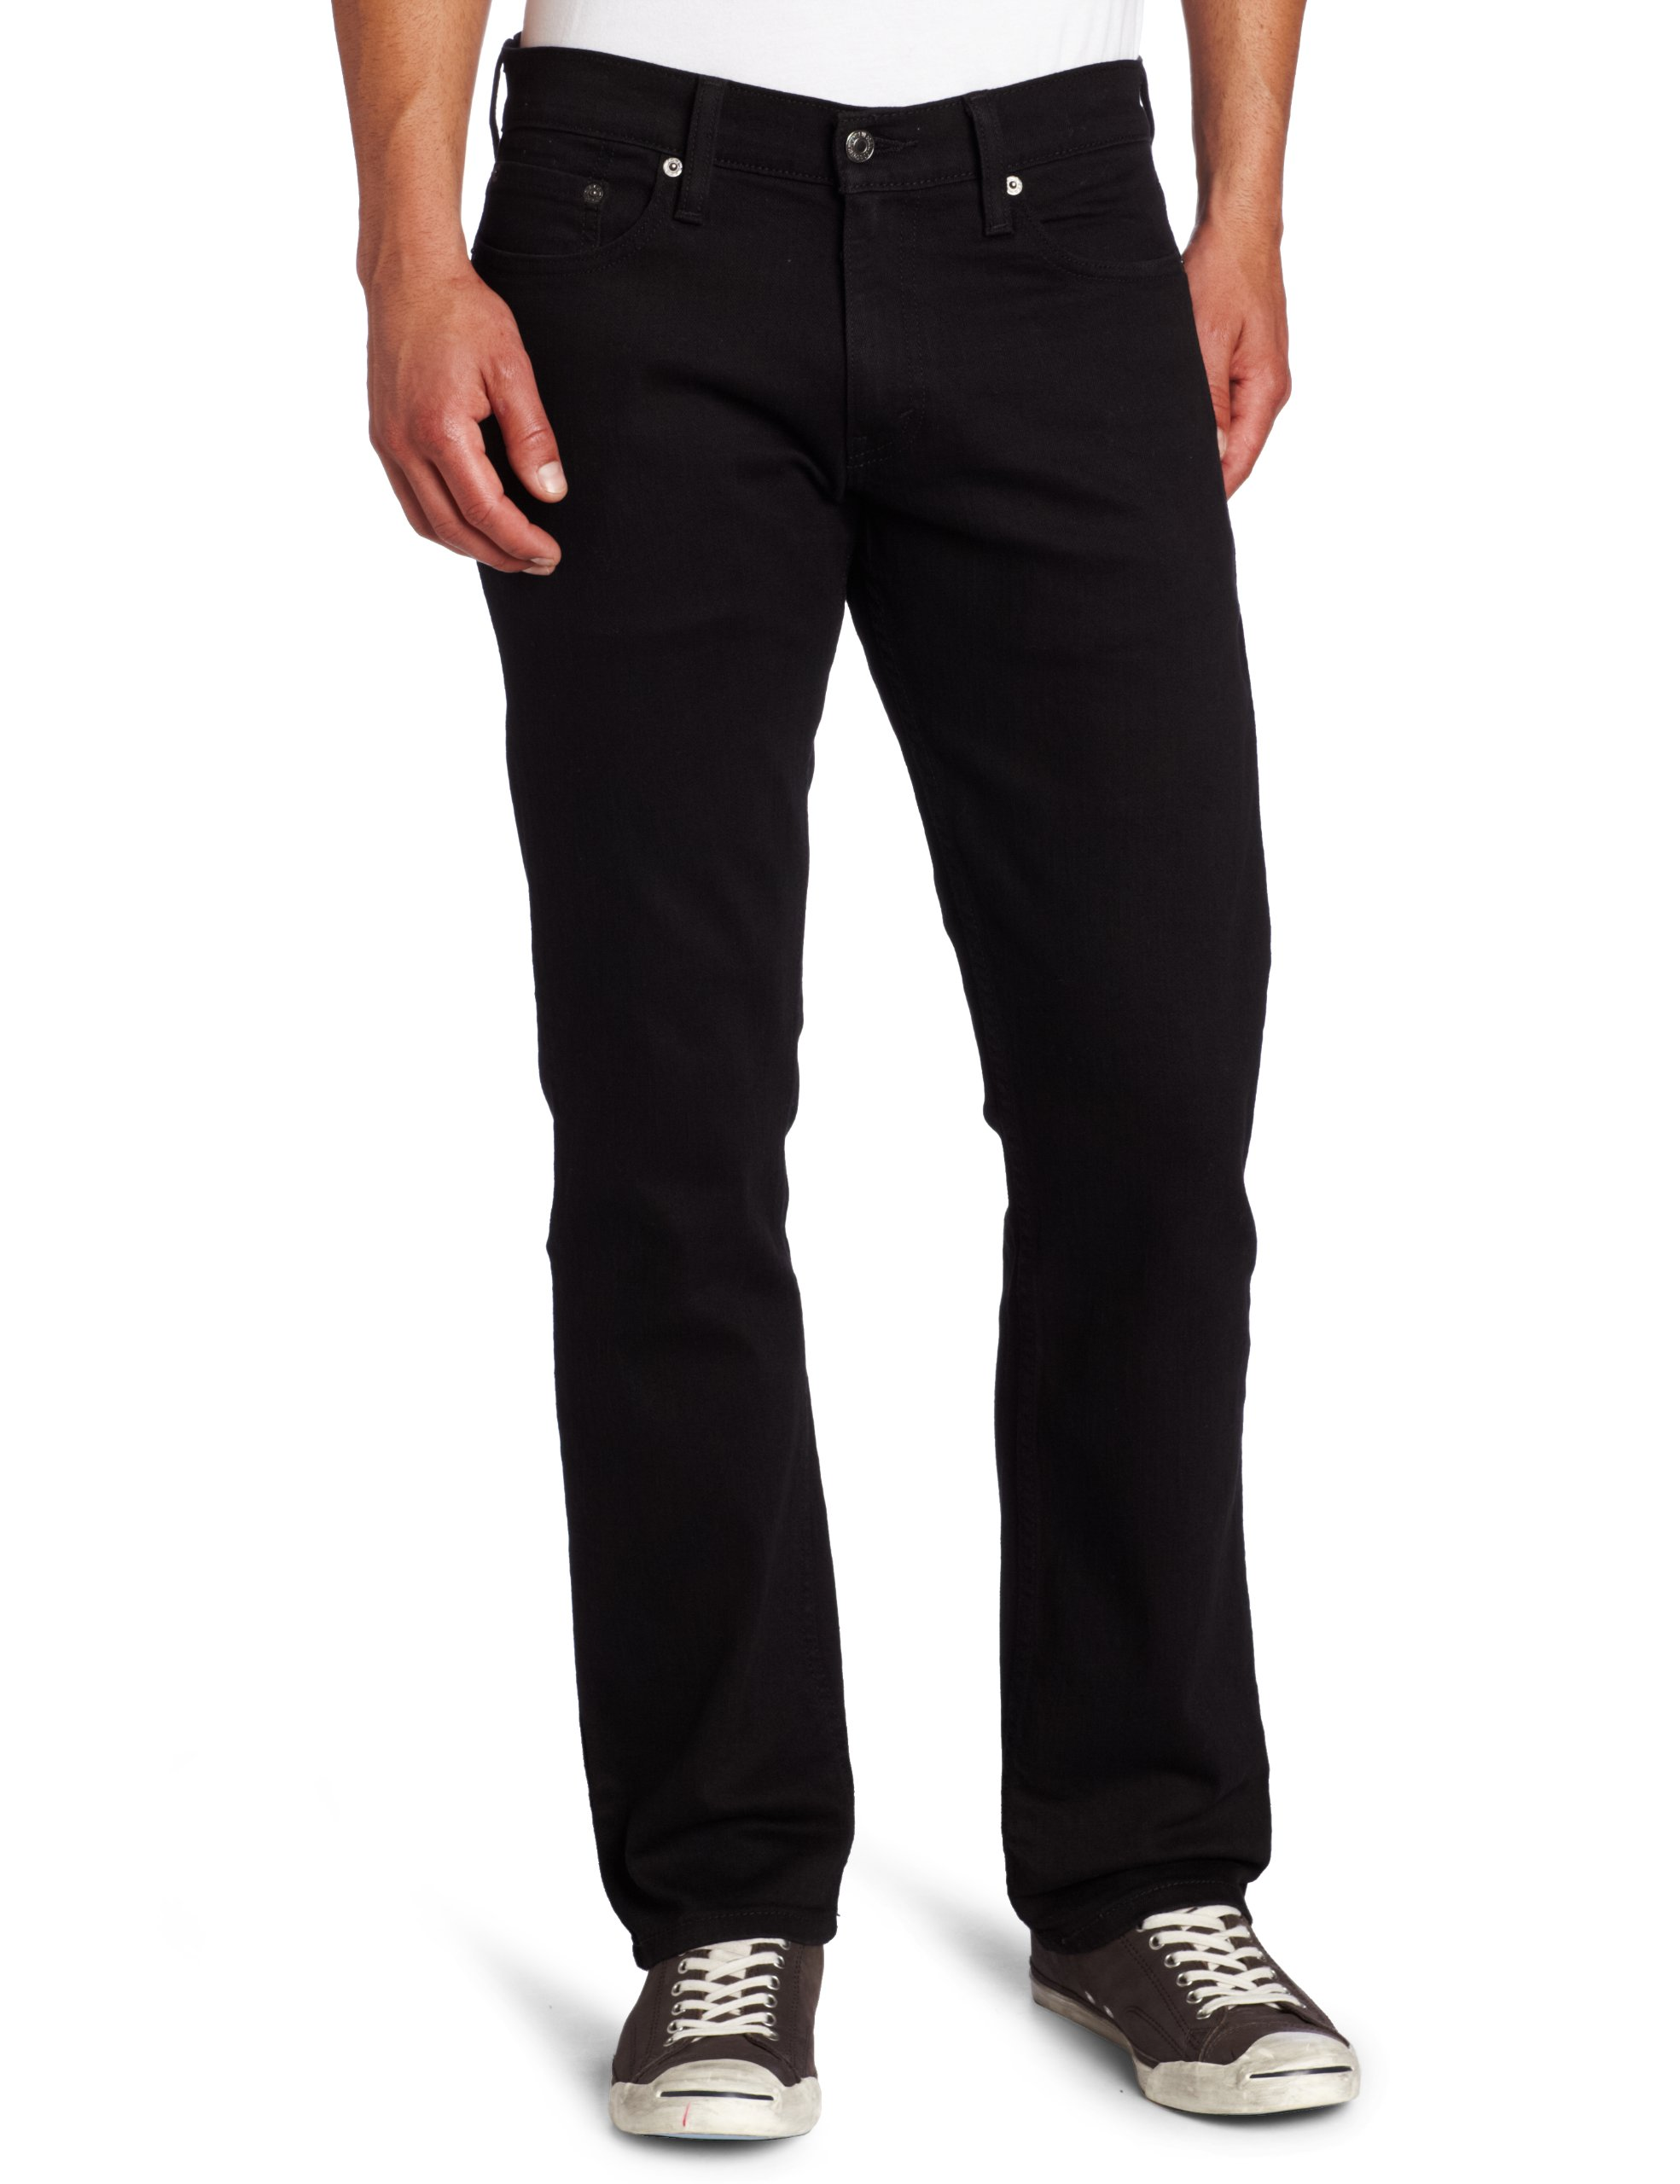 Levi_s Men_s 514 Straight fit Stretch Jean,  Black - Stretch, 32x36